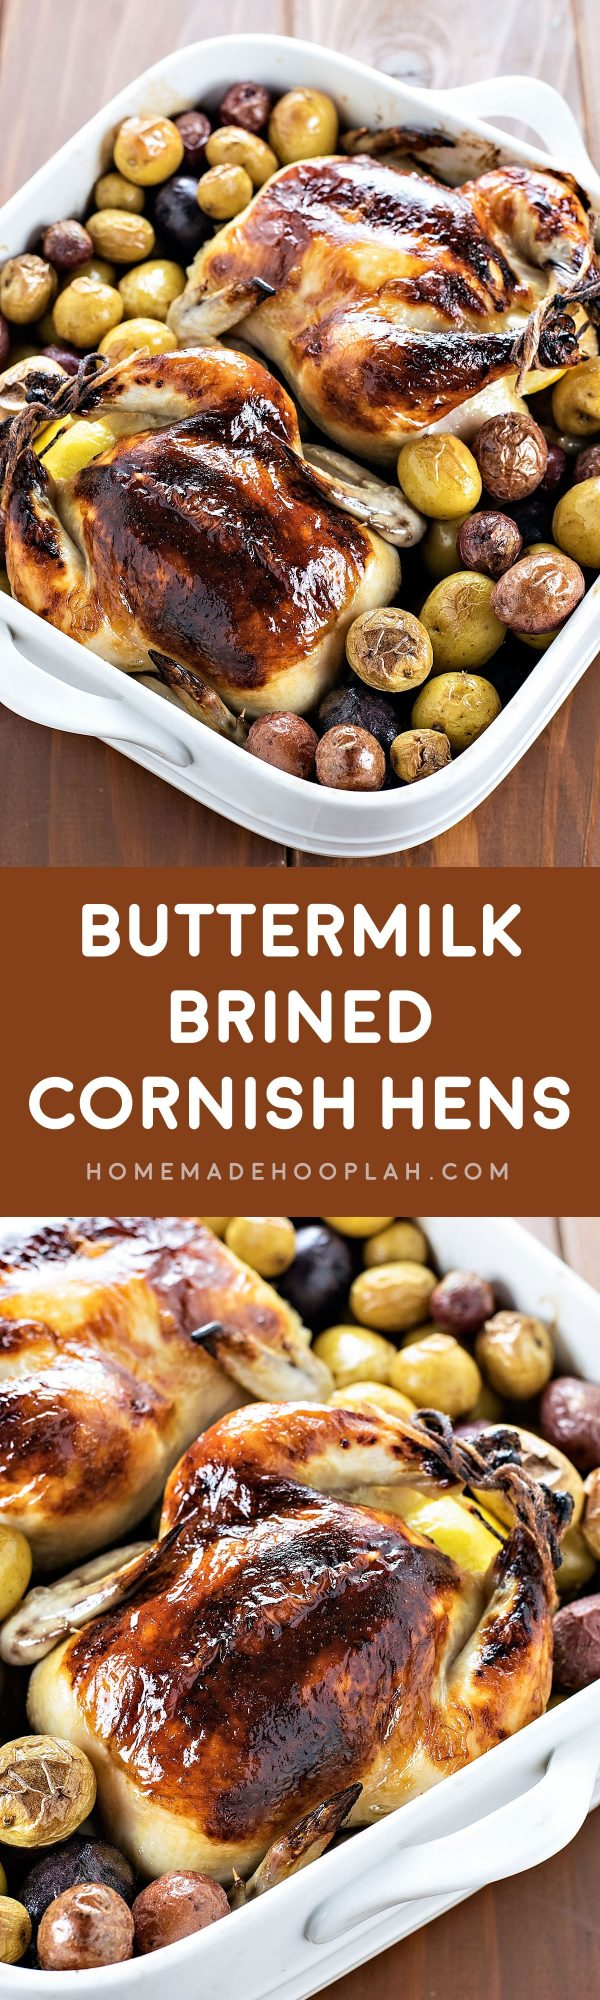 Buttermilk Brined Cornish Hens! Cornish hens cooked to tender perfection, all thanks to an extremely flavorful buttermilk brine. It's the perfect dinner for two!   HomemadeHooplah.com